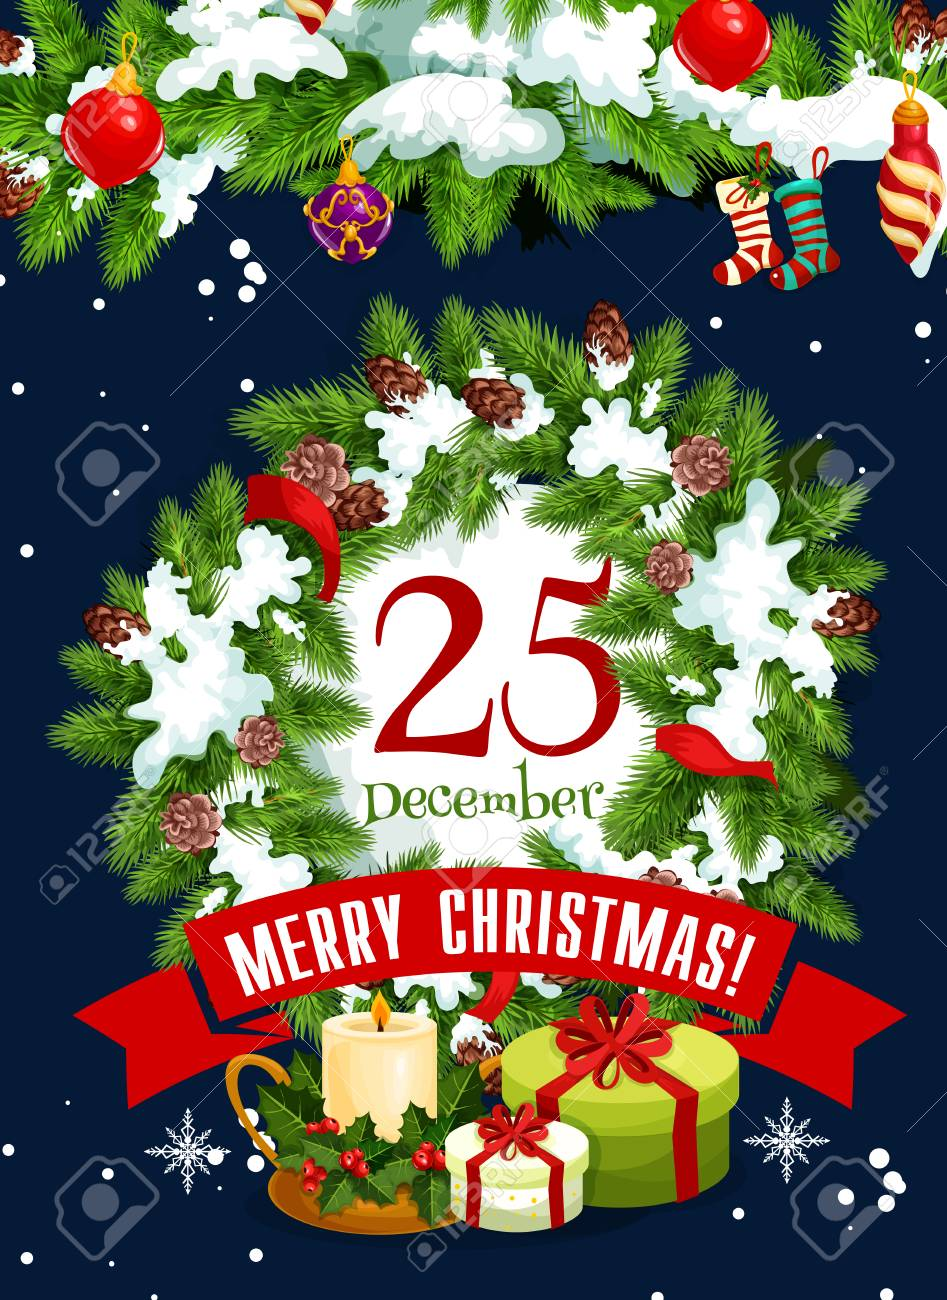 merry christmas greeting card for 25 december winter holiday